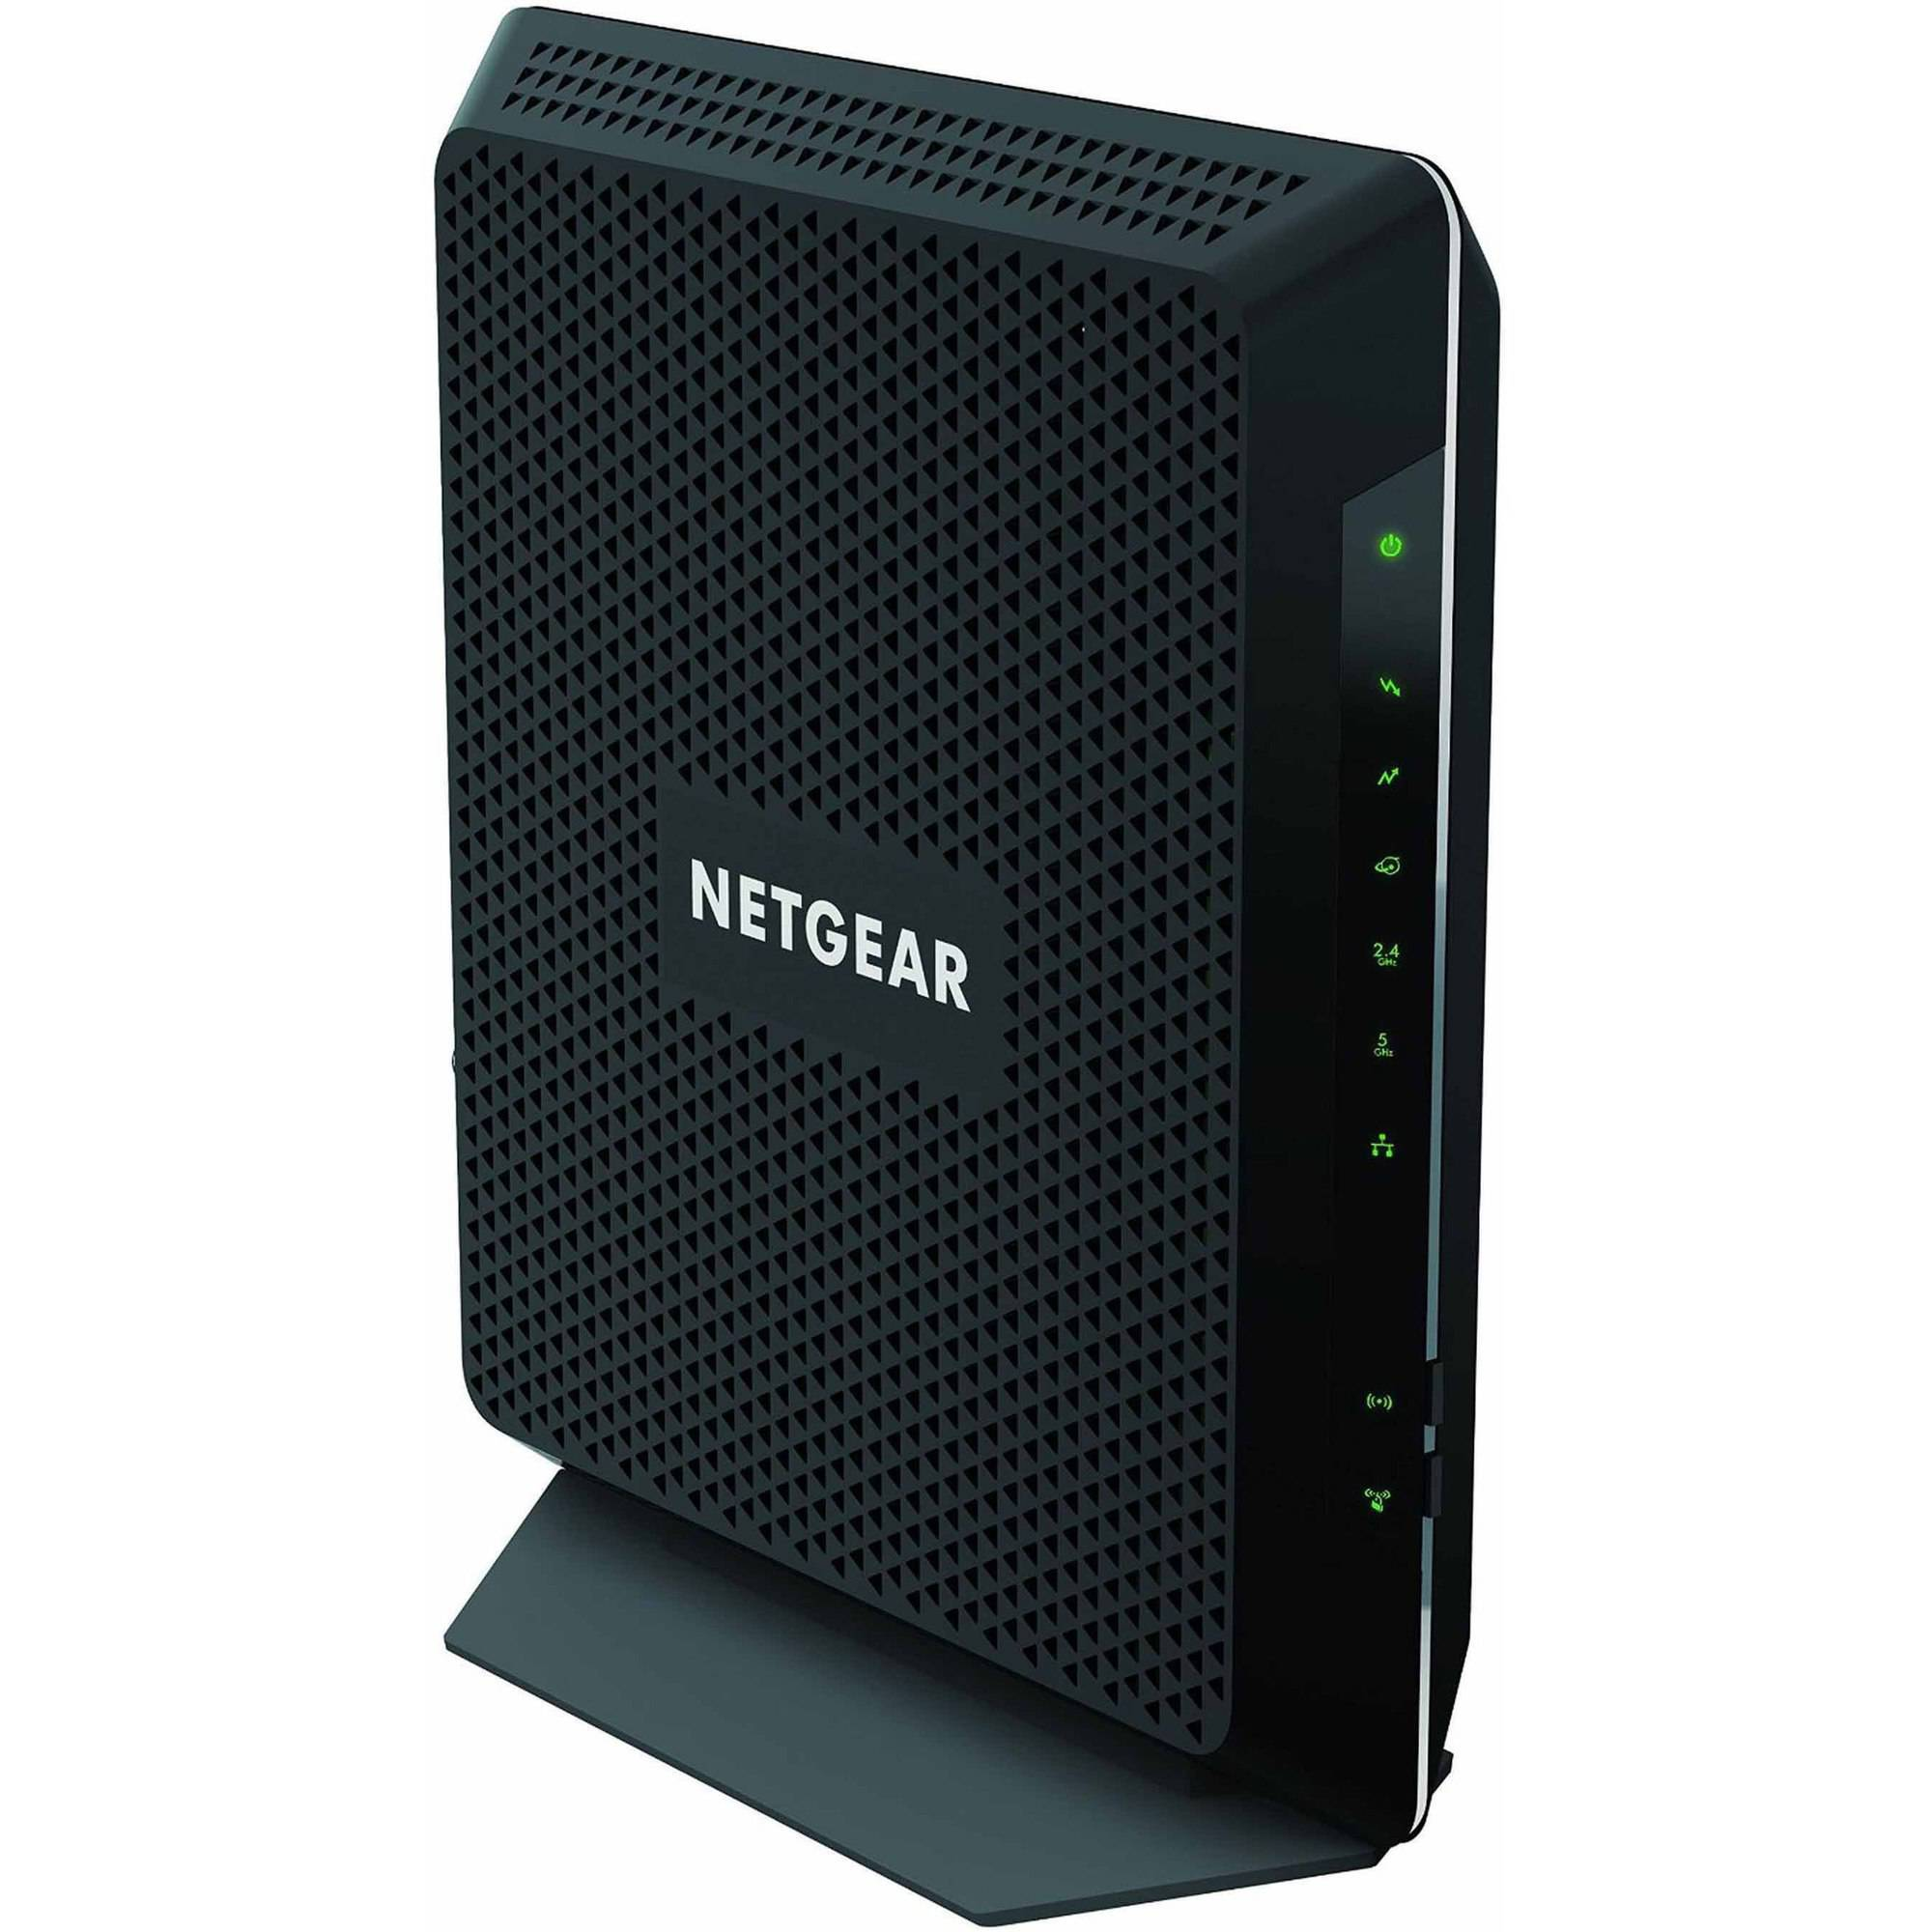 R6020 wifi routers networking home netgear - The Netgear C7000 Router With Gigabit Wifi 4 Gigabit Eth Ports And 0 Usb